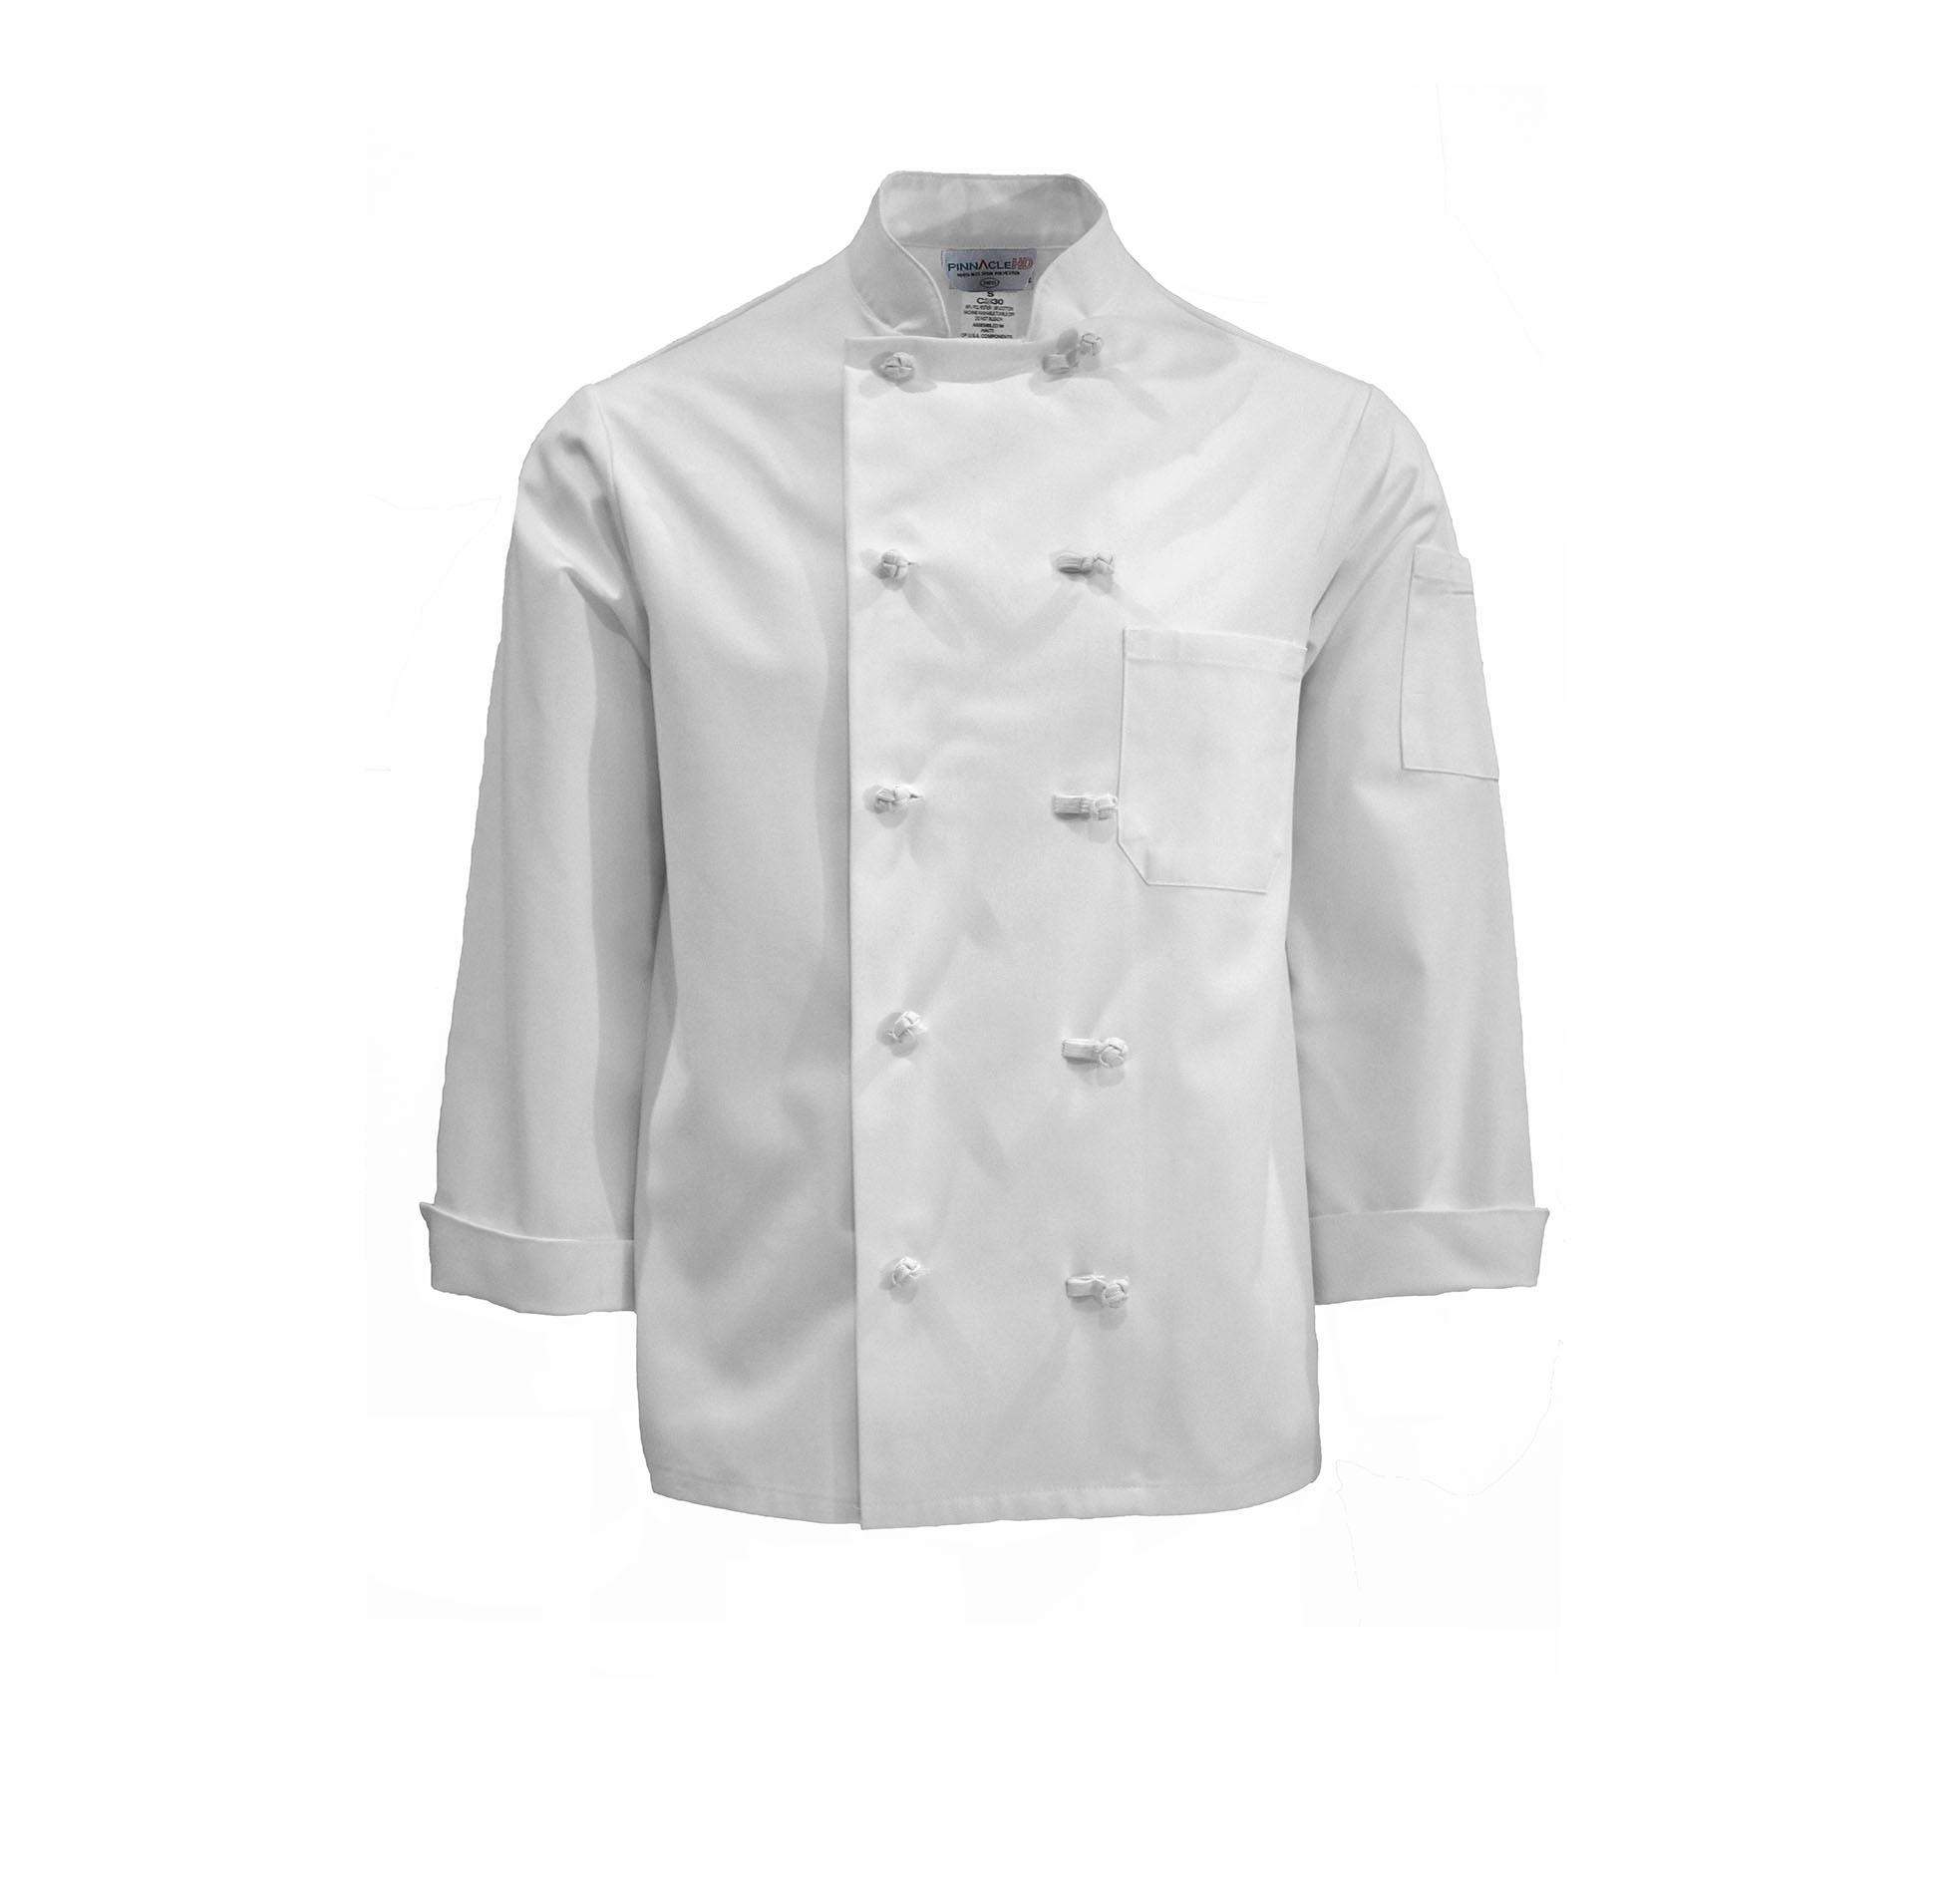 C330-Chef Coat, 10 Knot Buttons, Spun Poly